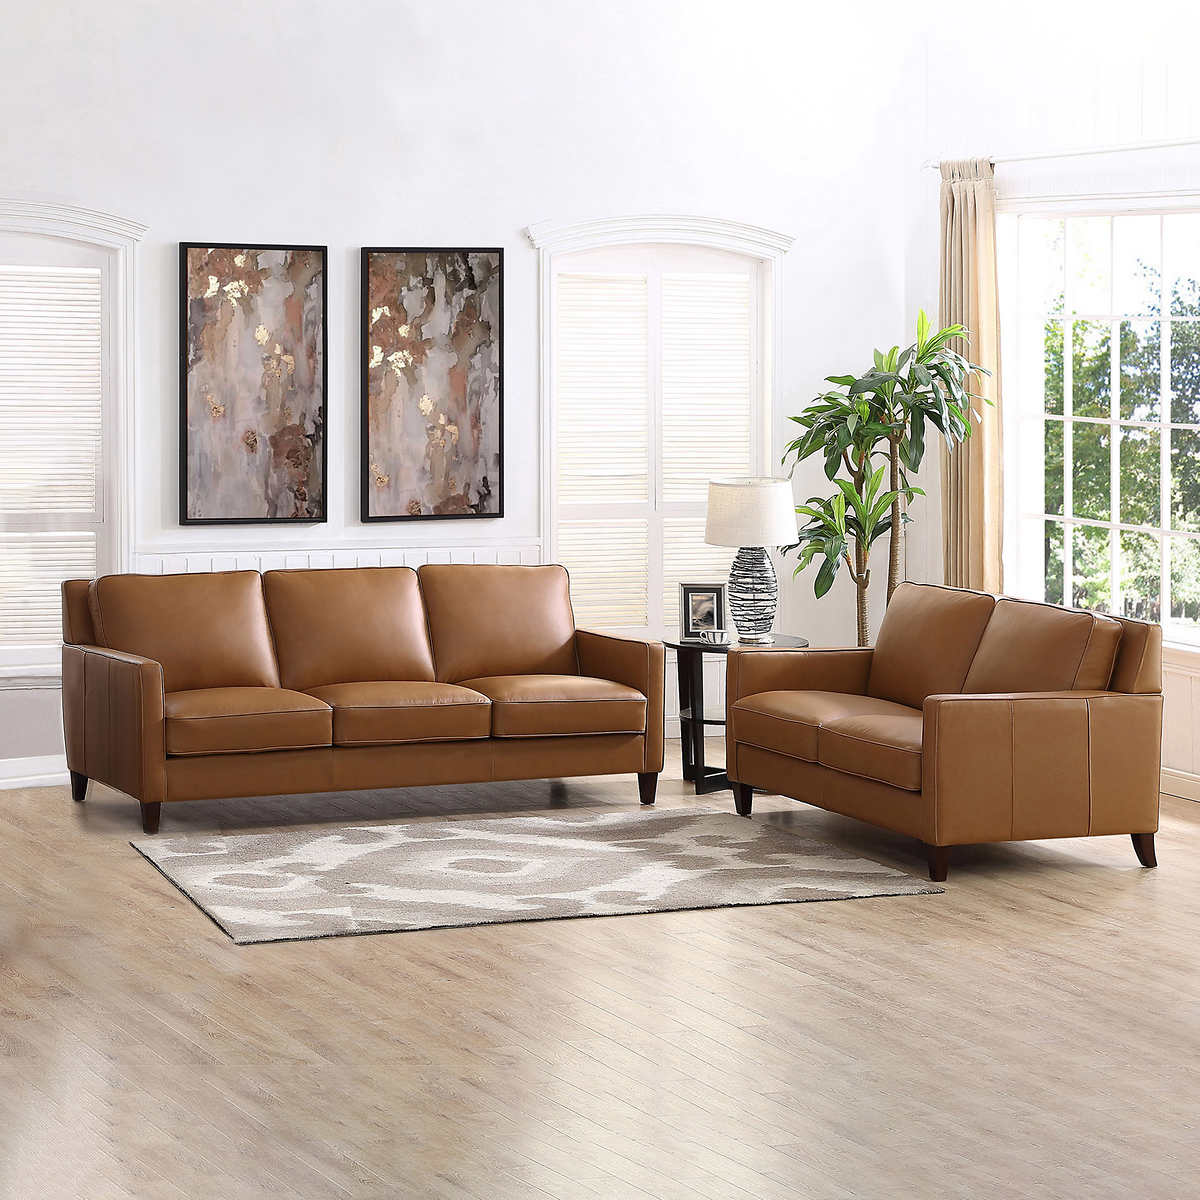 West Park 2-piece Top Grain Leather Set - Sofa, Loveseat